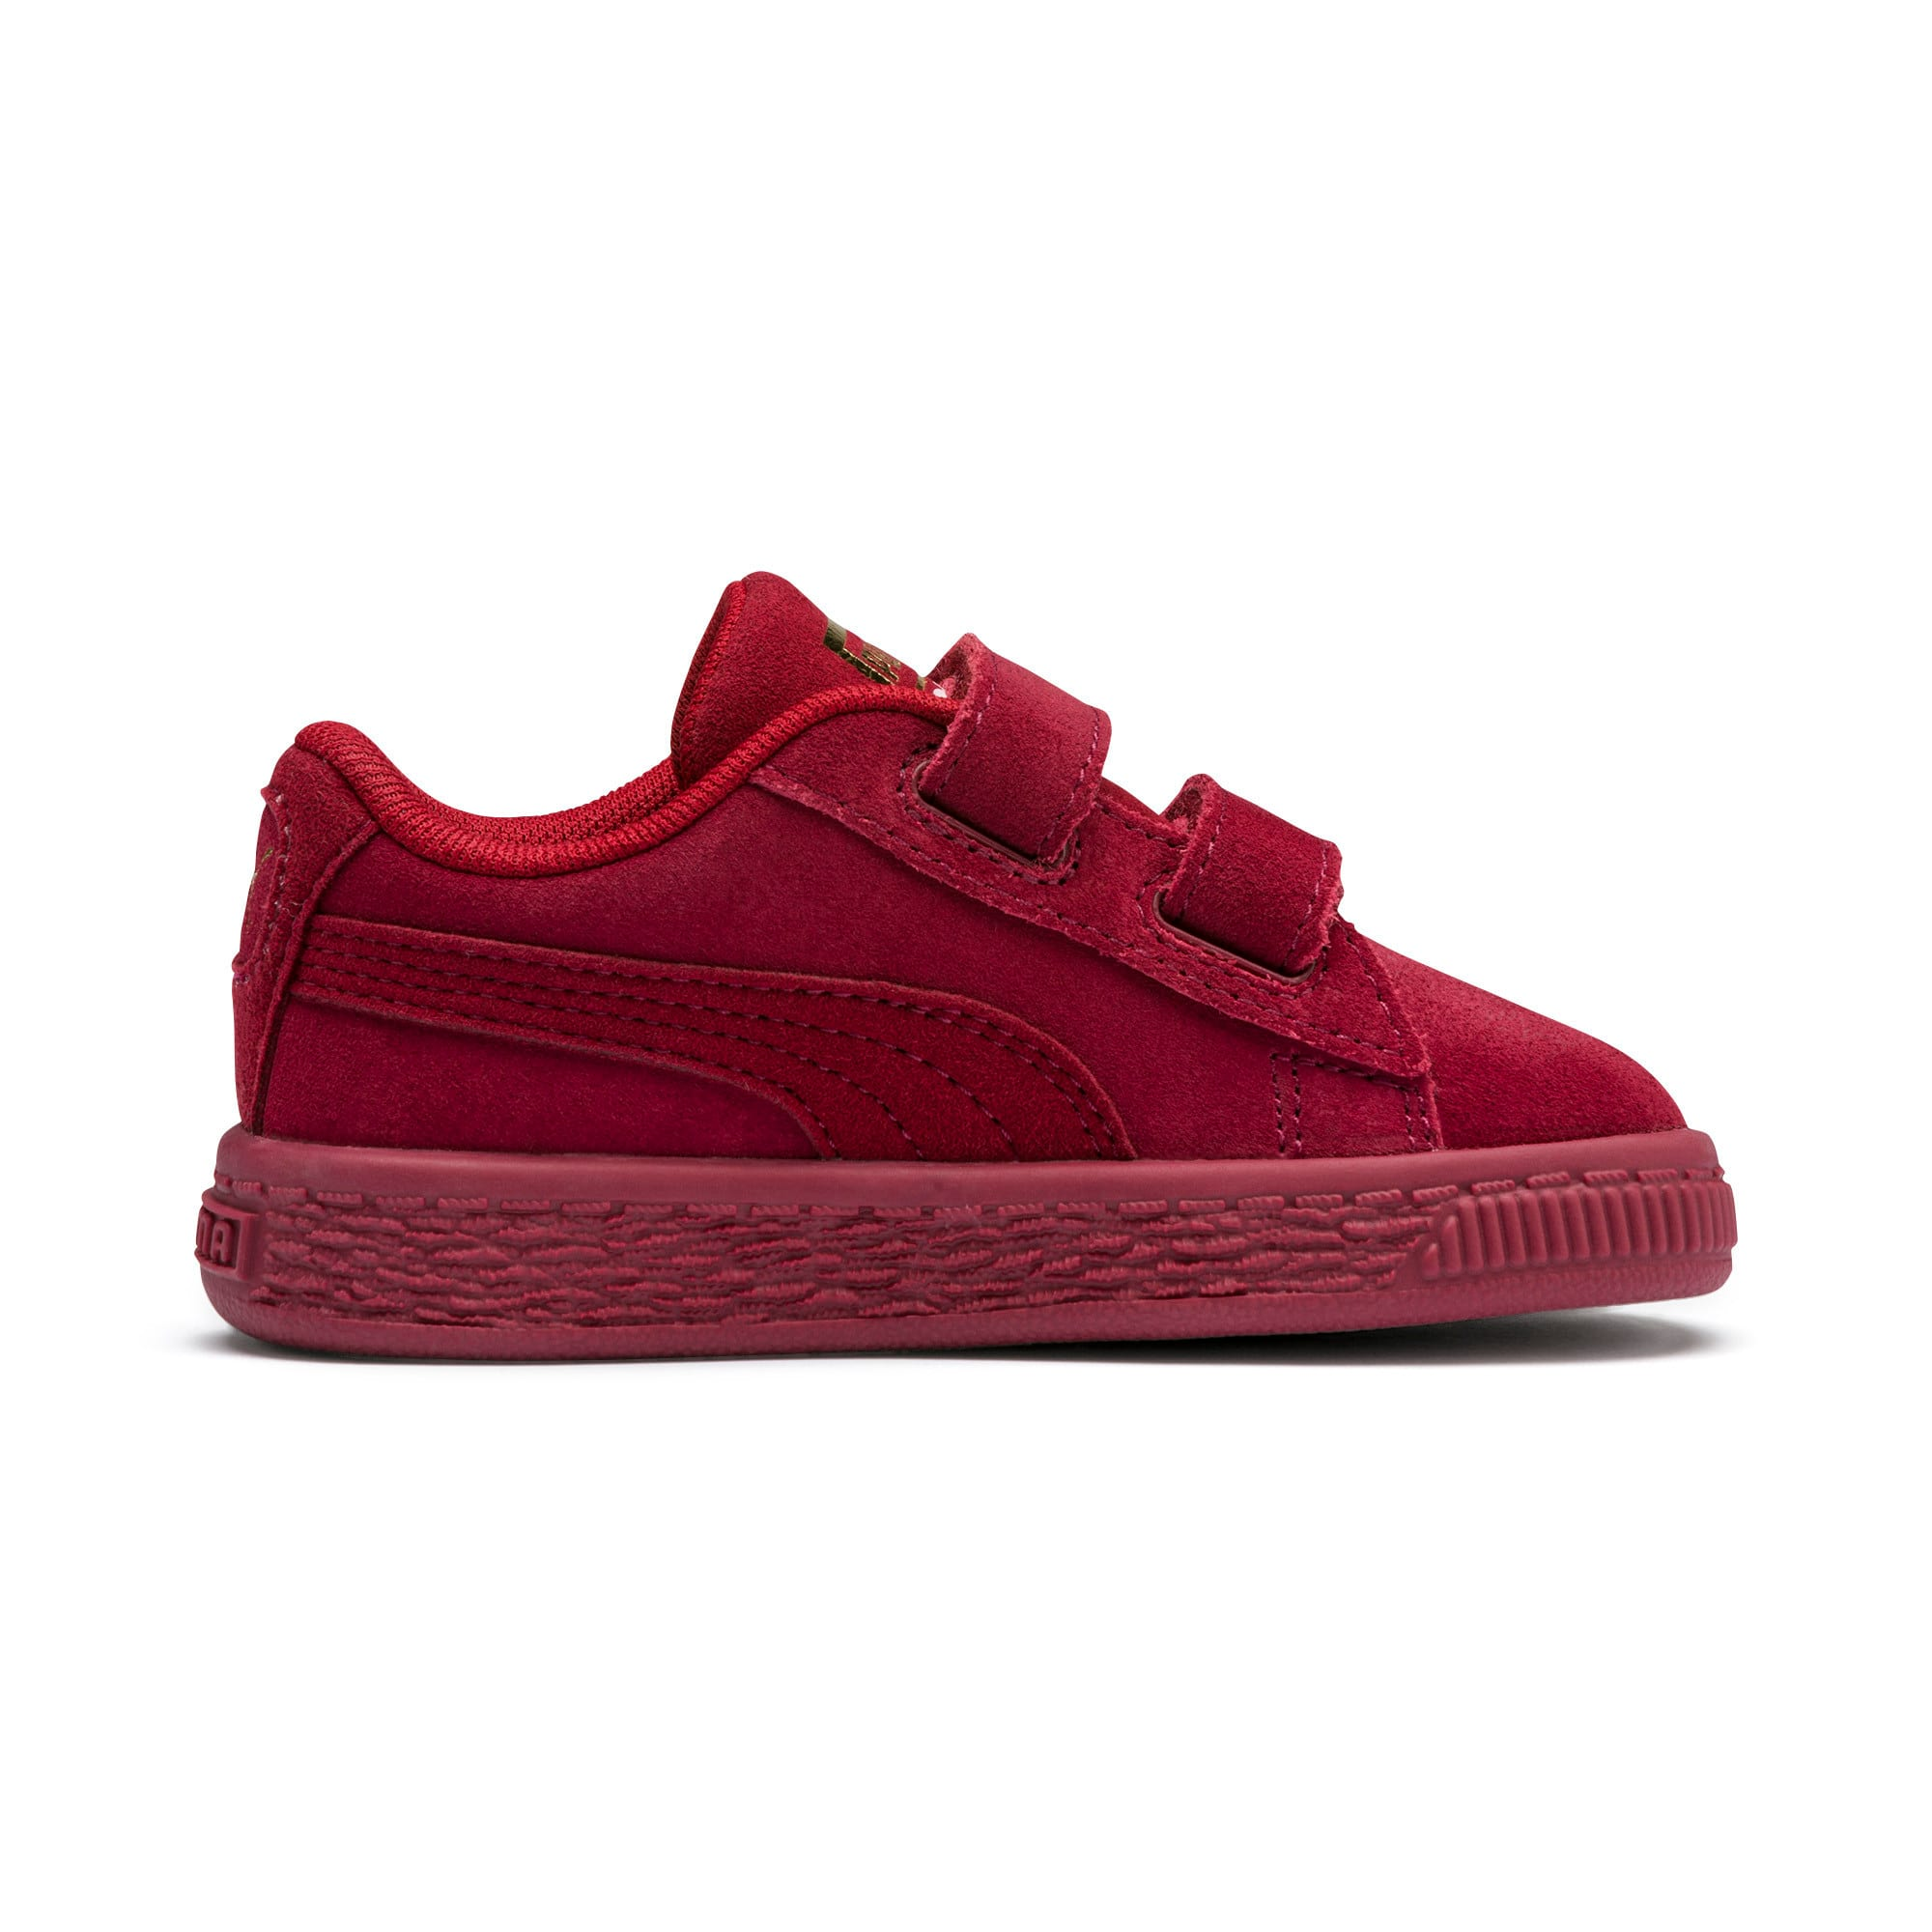 Thumbnail 5 of Sesame Street 50 Suede Statement Babies' Trainers, Rhubarb-Puma White, medium